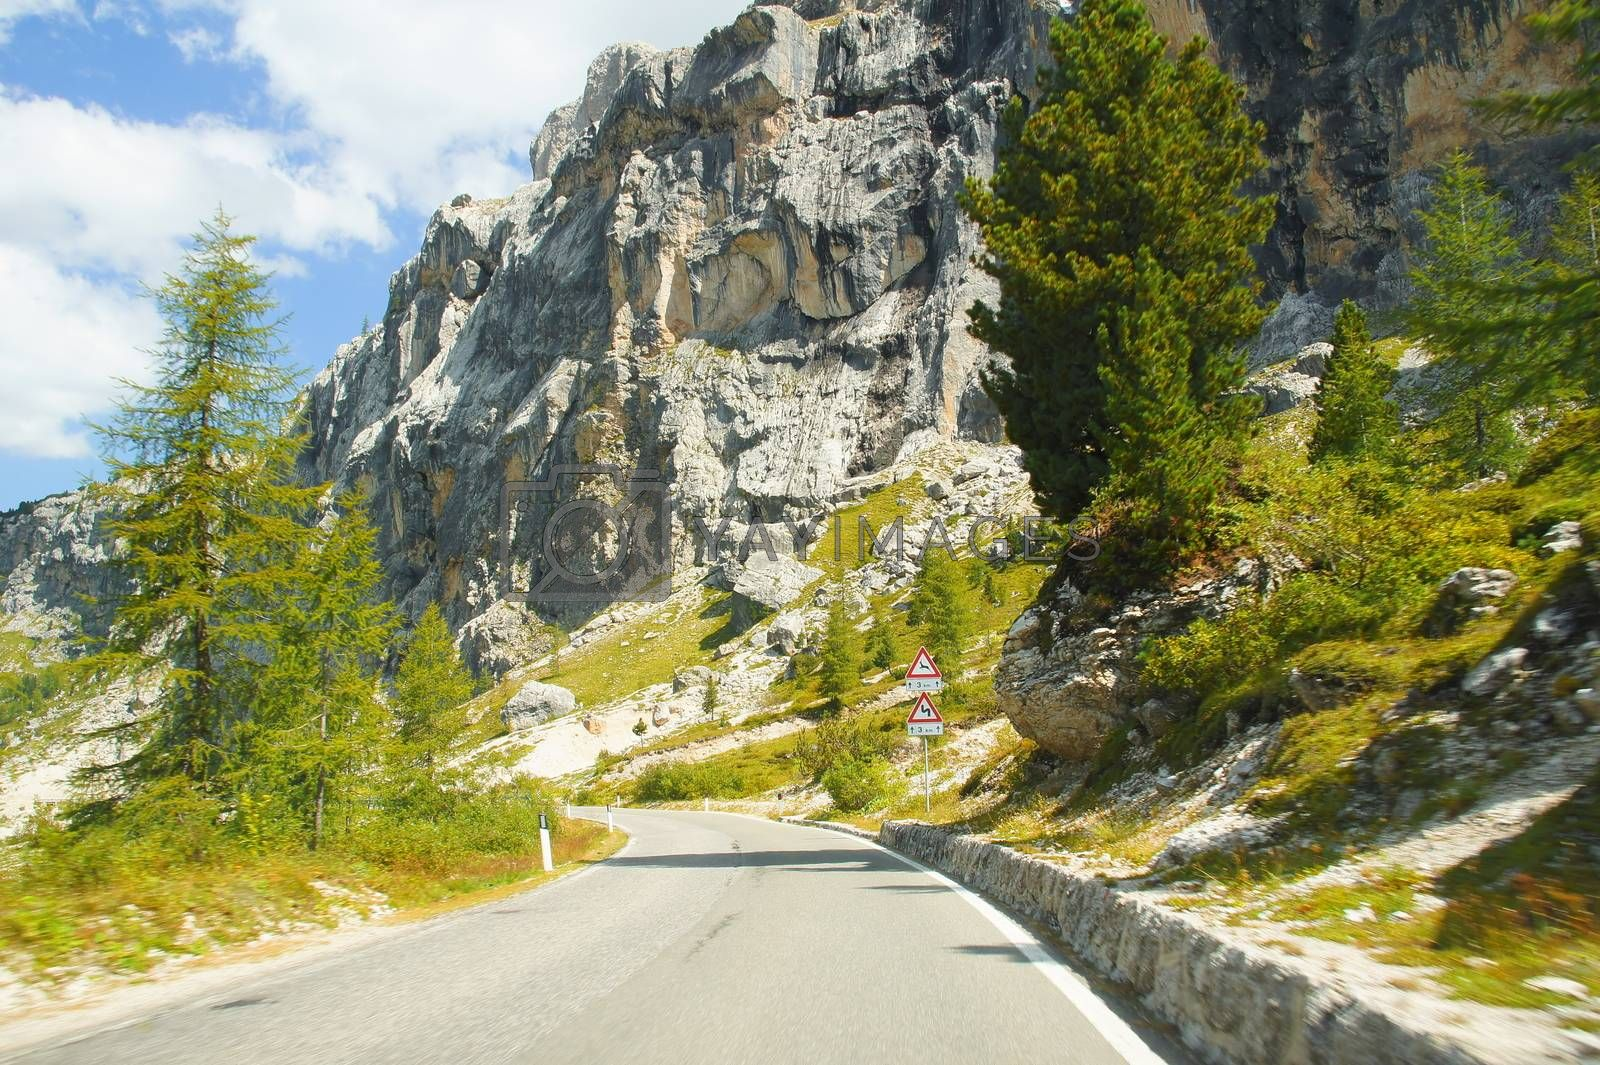 Royalty free image of gardena passo street by azurin